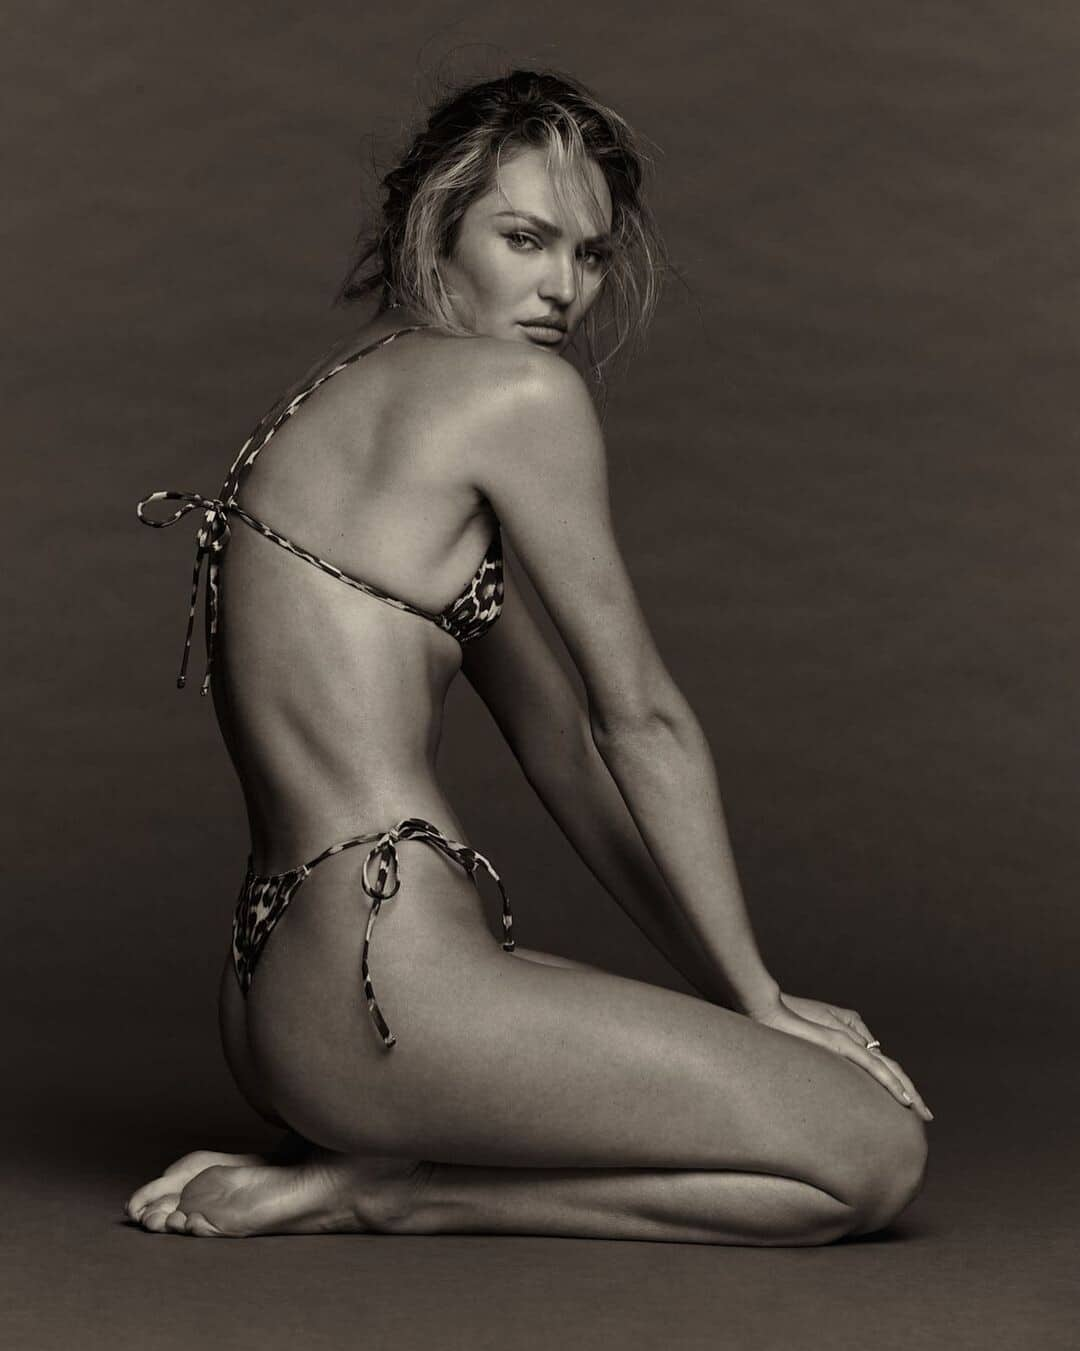 Candice Swanepoel by Jerome Duran